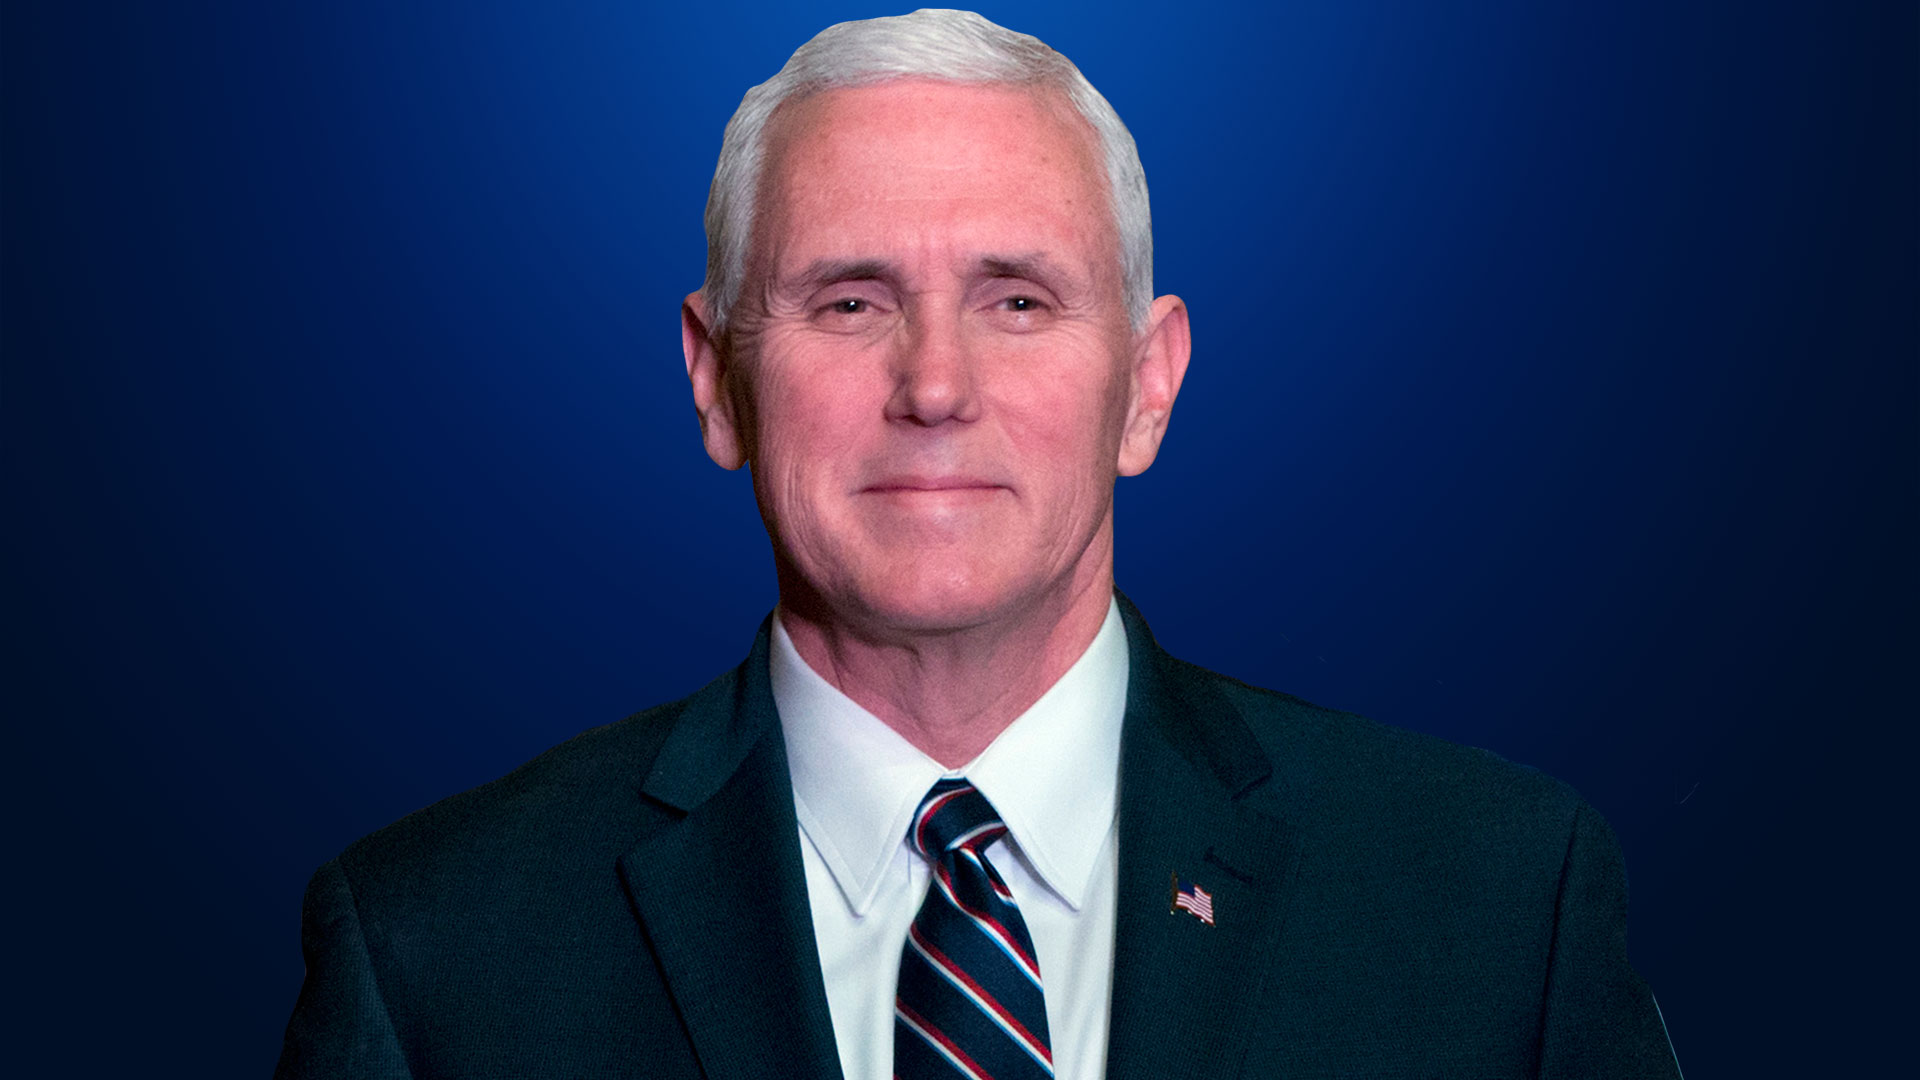 KELO Mike Pence